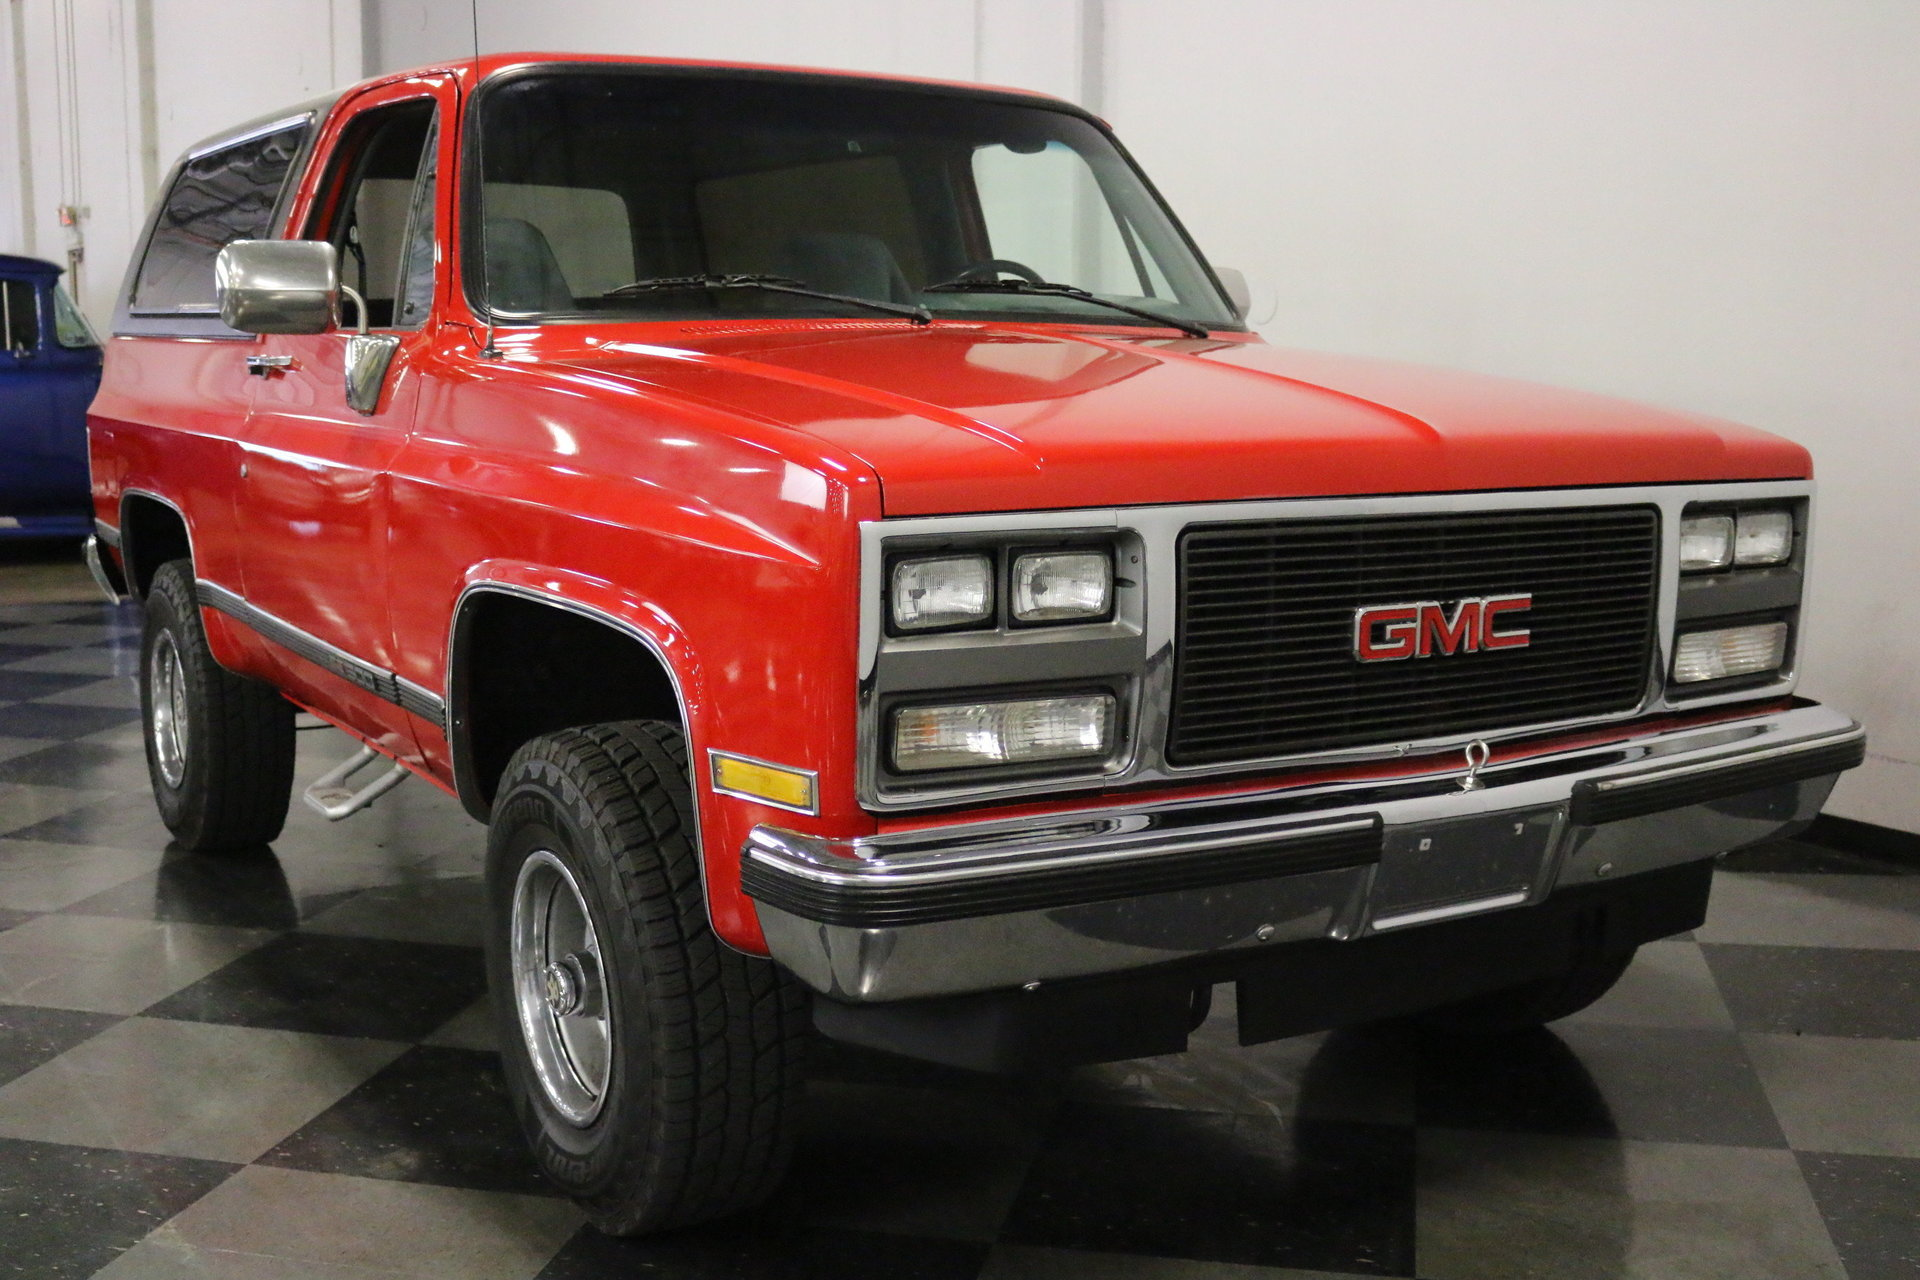 1989 Gmc Jimmy 4x4 The Car Source Streetside Classics Nation S Trusted